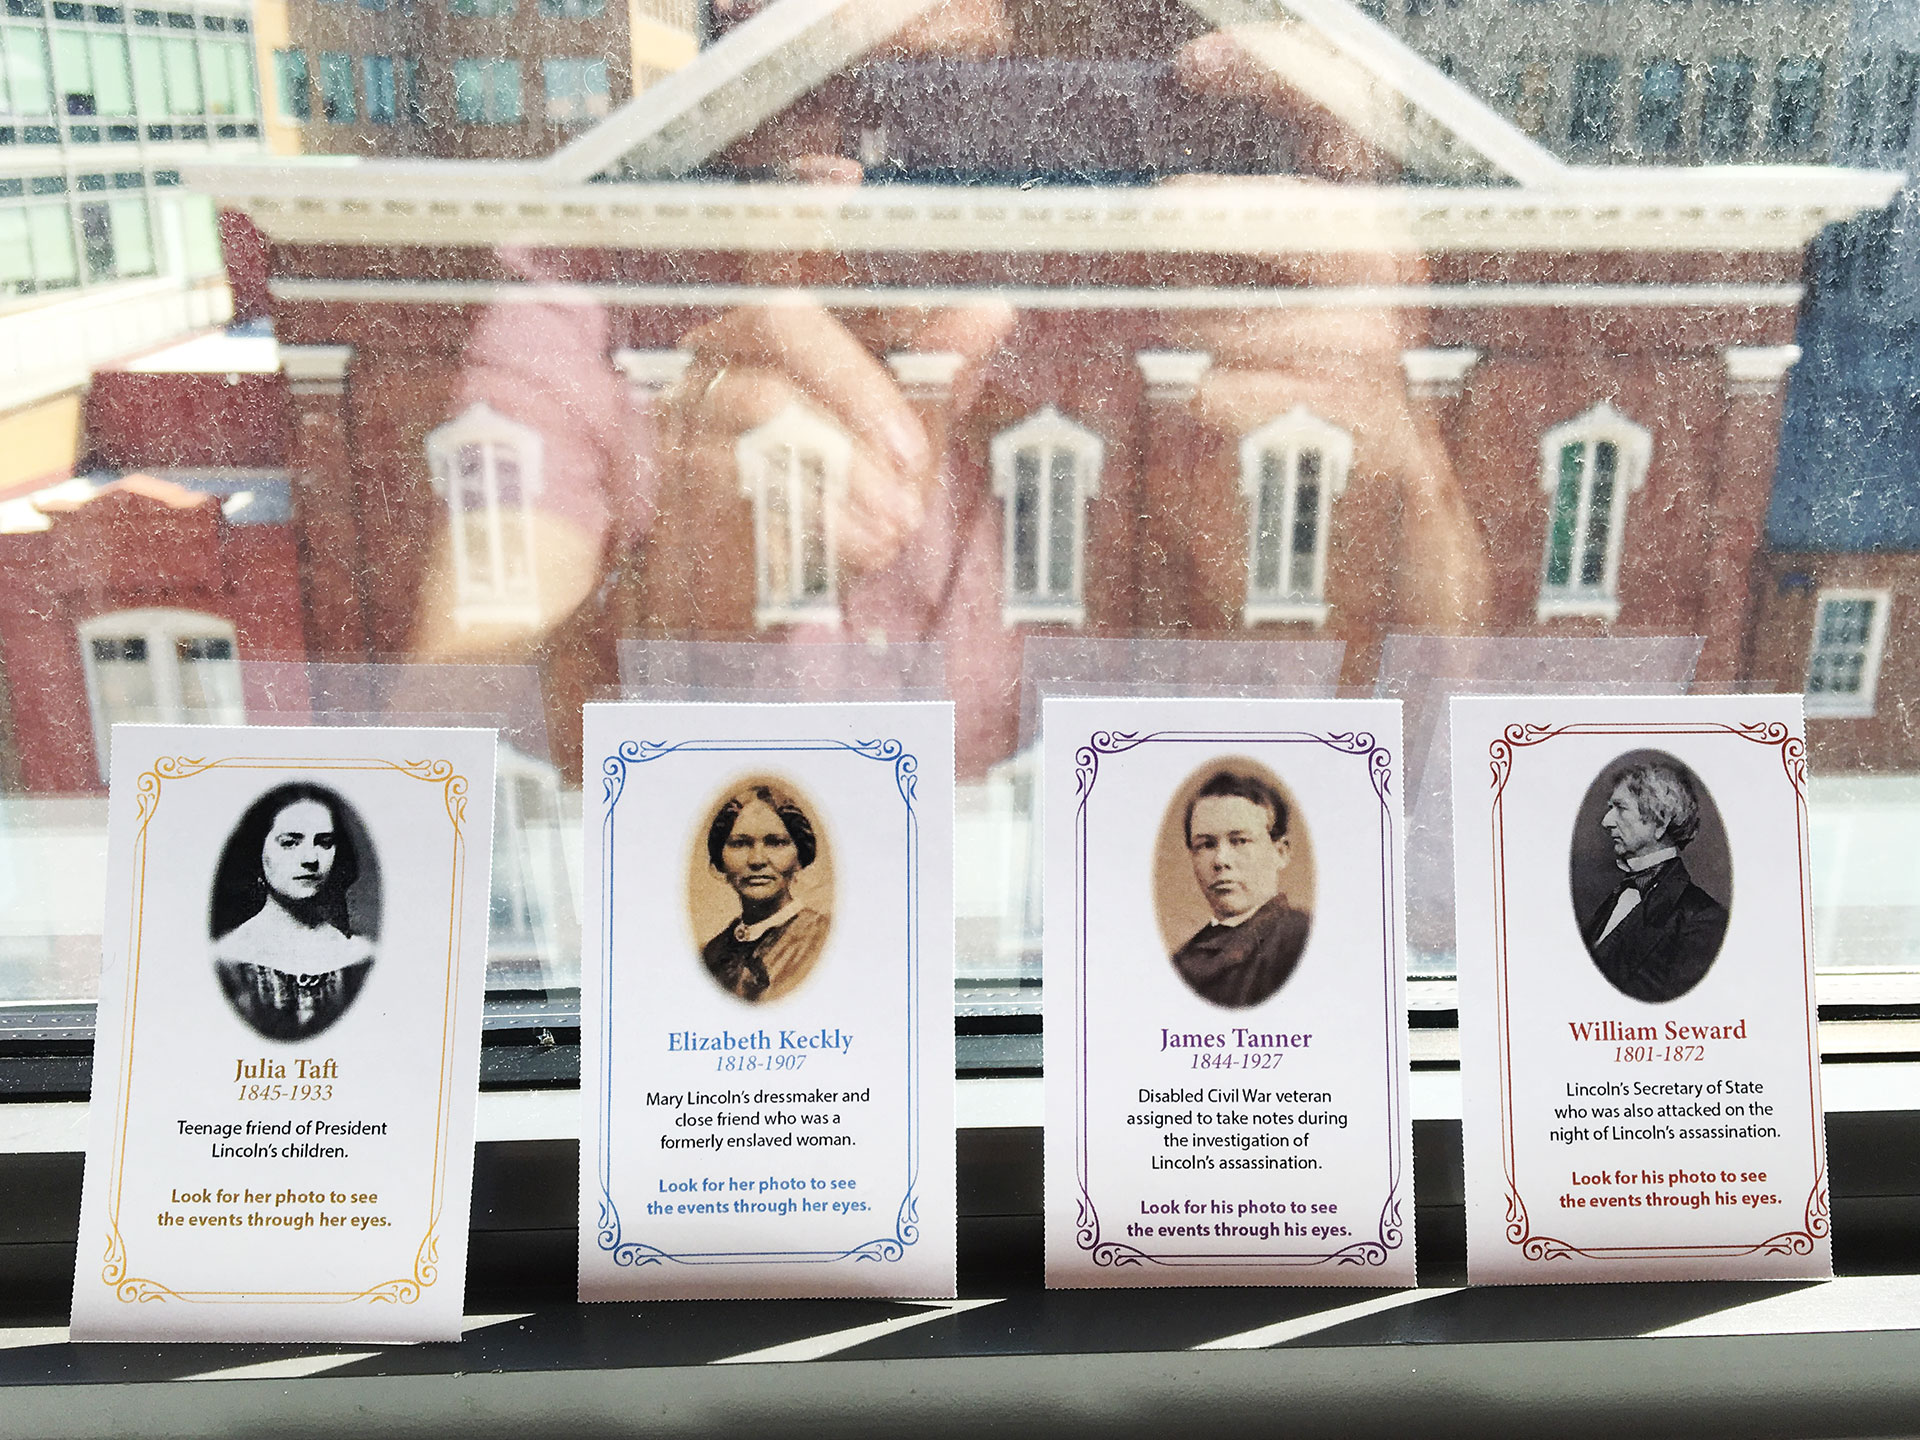 The tested character cards feature a portrait of each person and their name. Left to right: Julia Taft, Elizabeth Keckly, James Tanner and William Seward.